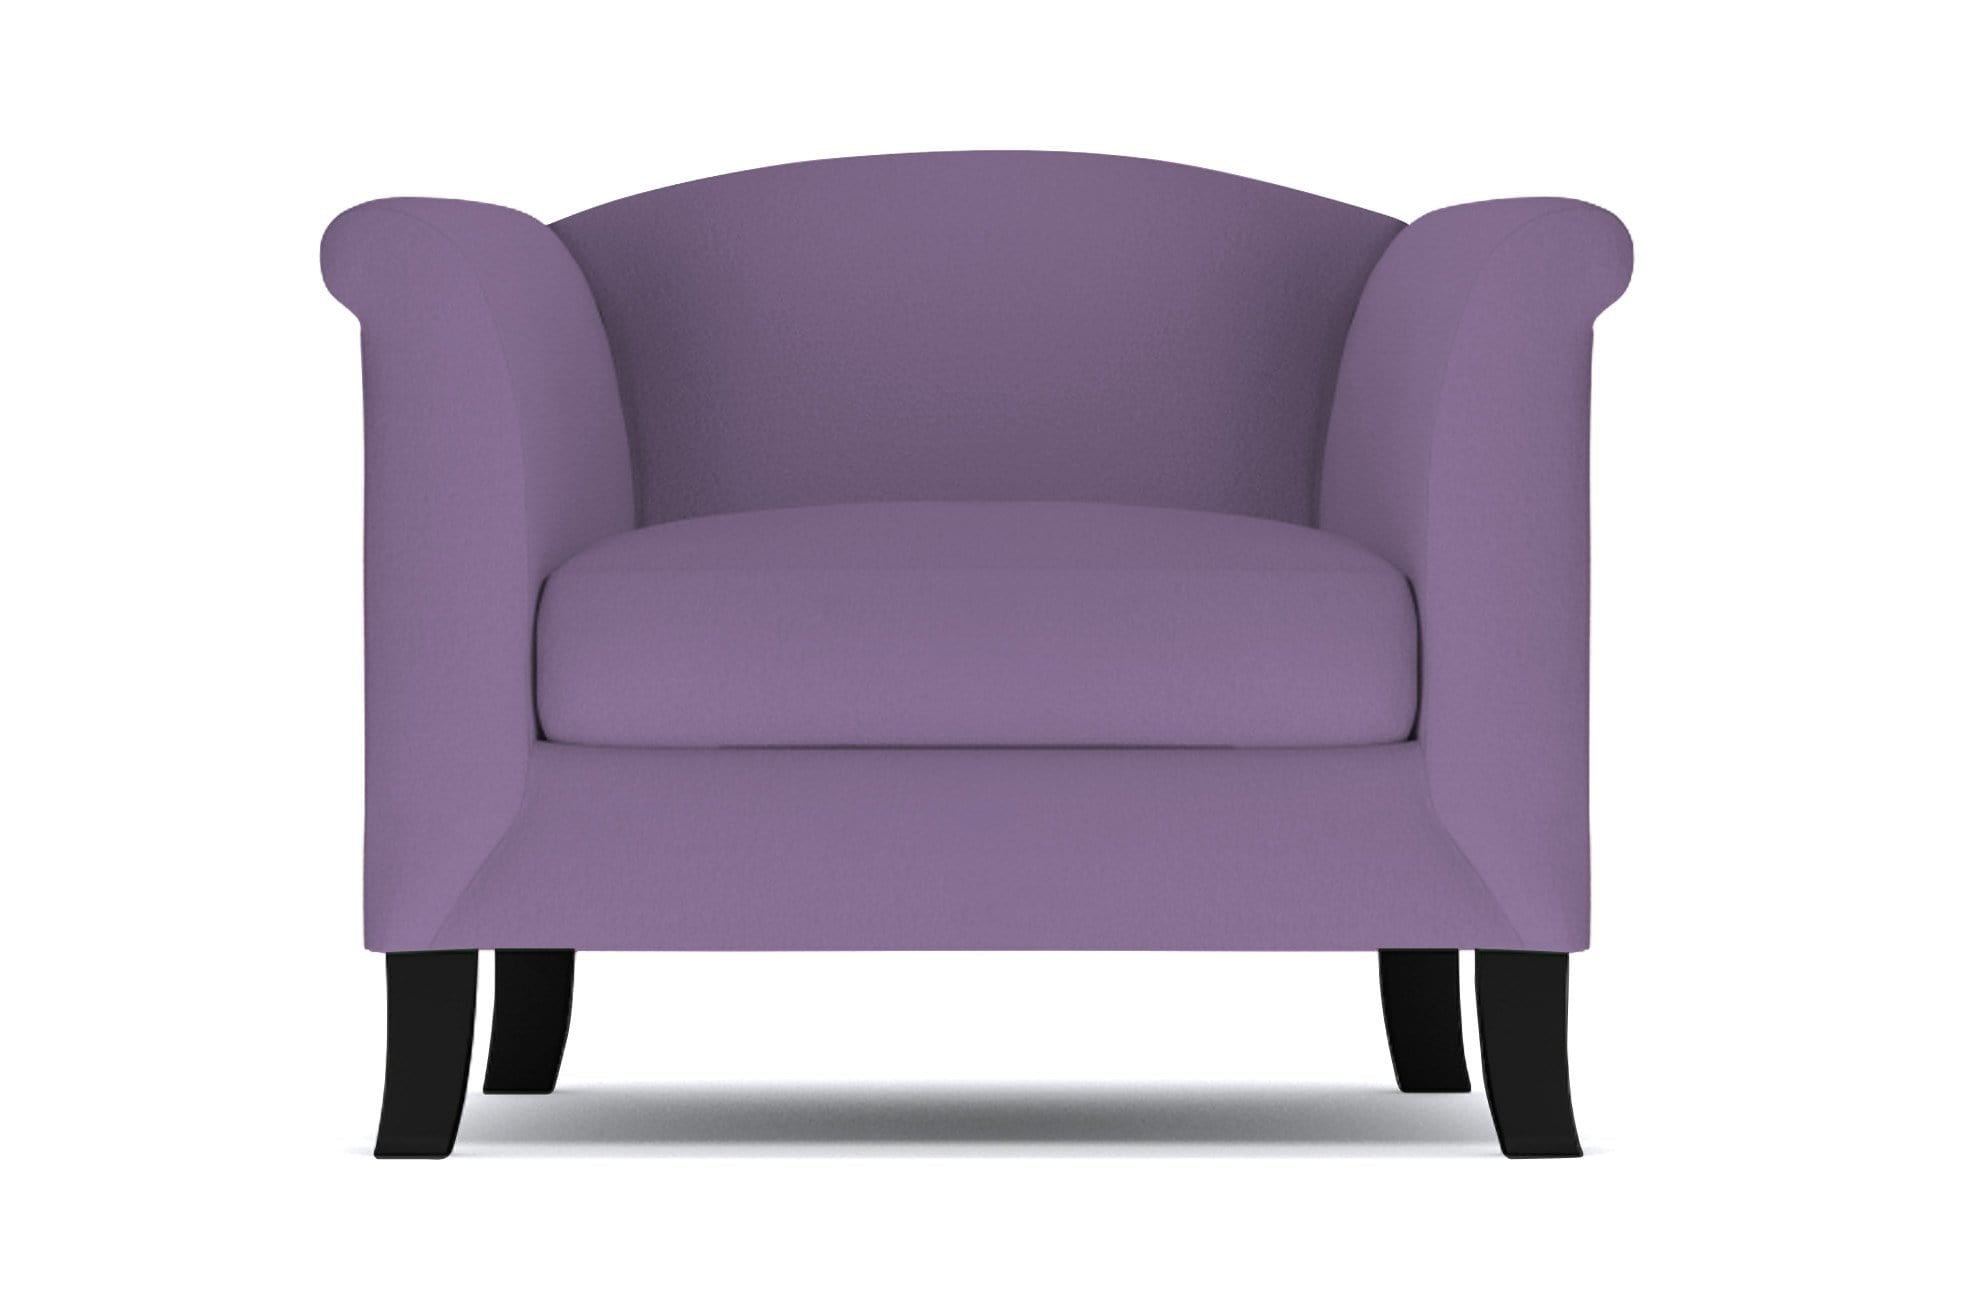 Albright_Chair__Purple_Velvet___Accent_Chair__Furniture_sold_by_Apt2B